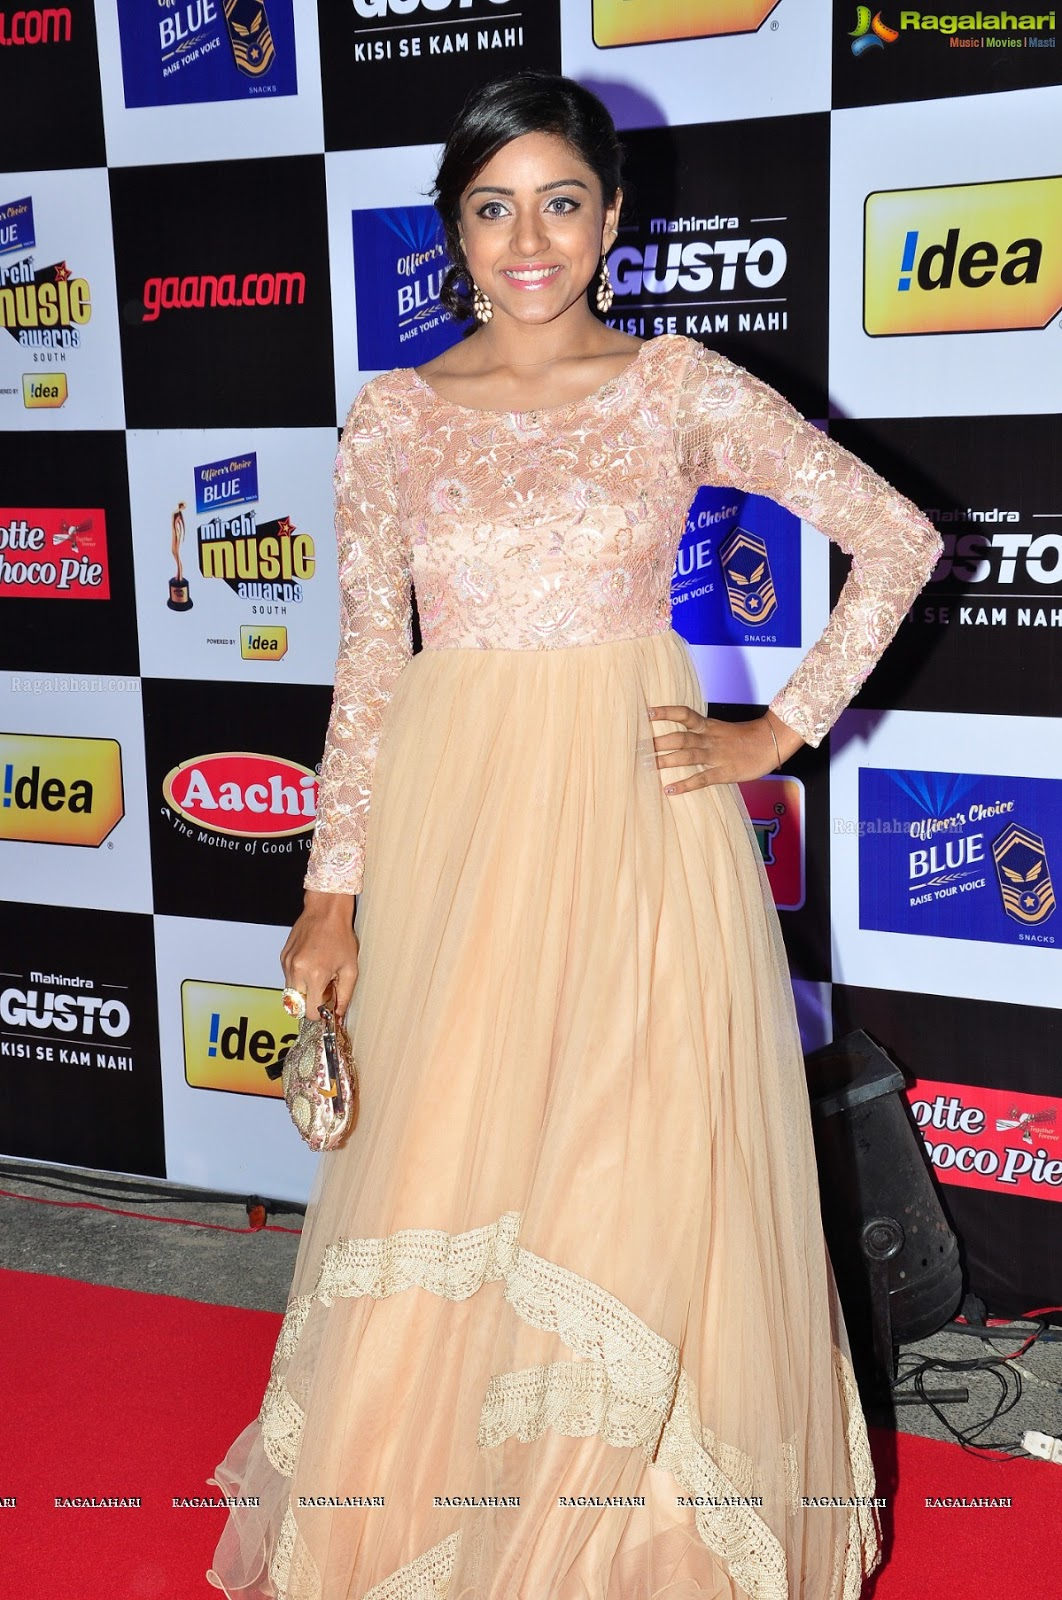 Vithika Sheru At Mirchi Music Awards 2014 Photos,Actress Vithika Sheru, Vithika Sheru New Photos, Vithika Sheru New